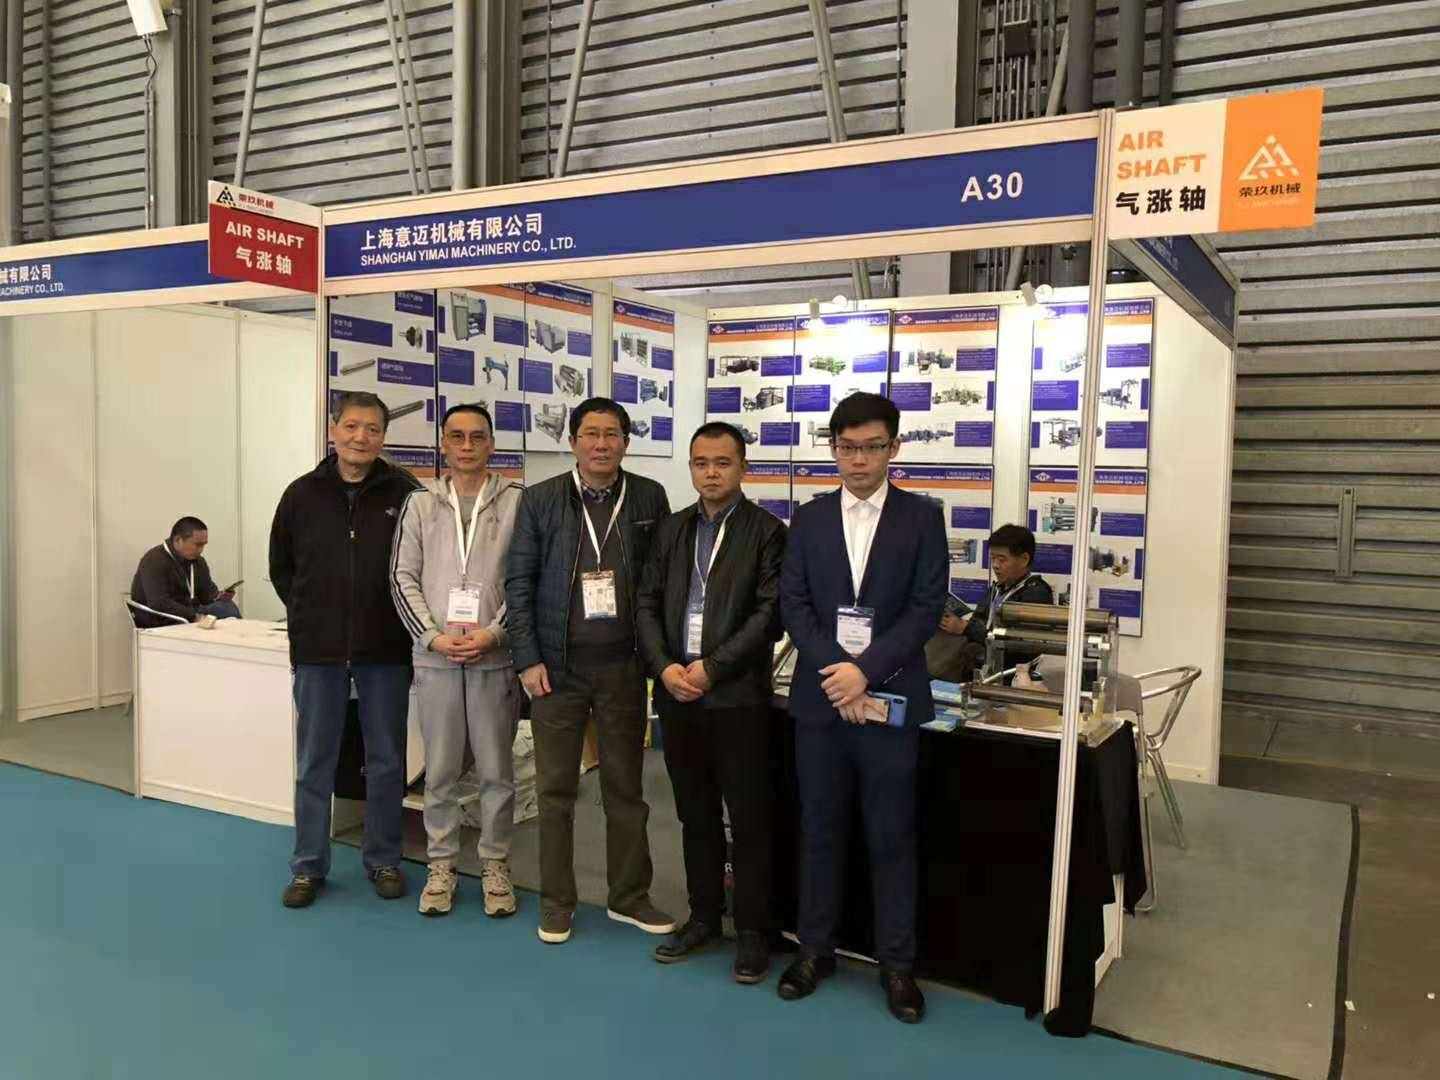 Machina 18th Shanghai Rongjiu sequi se ferre de international commercia socium nonwoven YIMAI Machinery